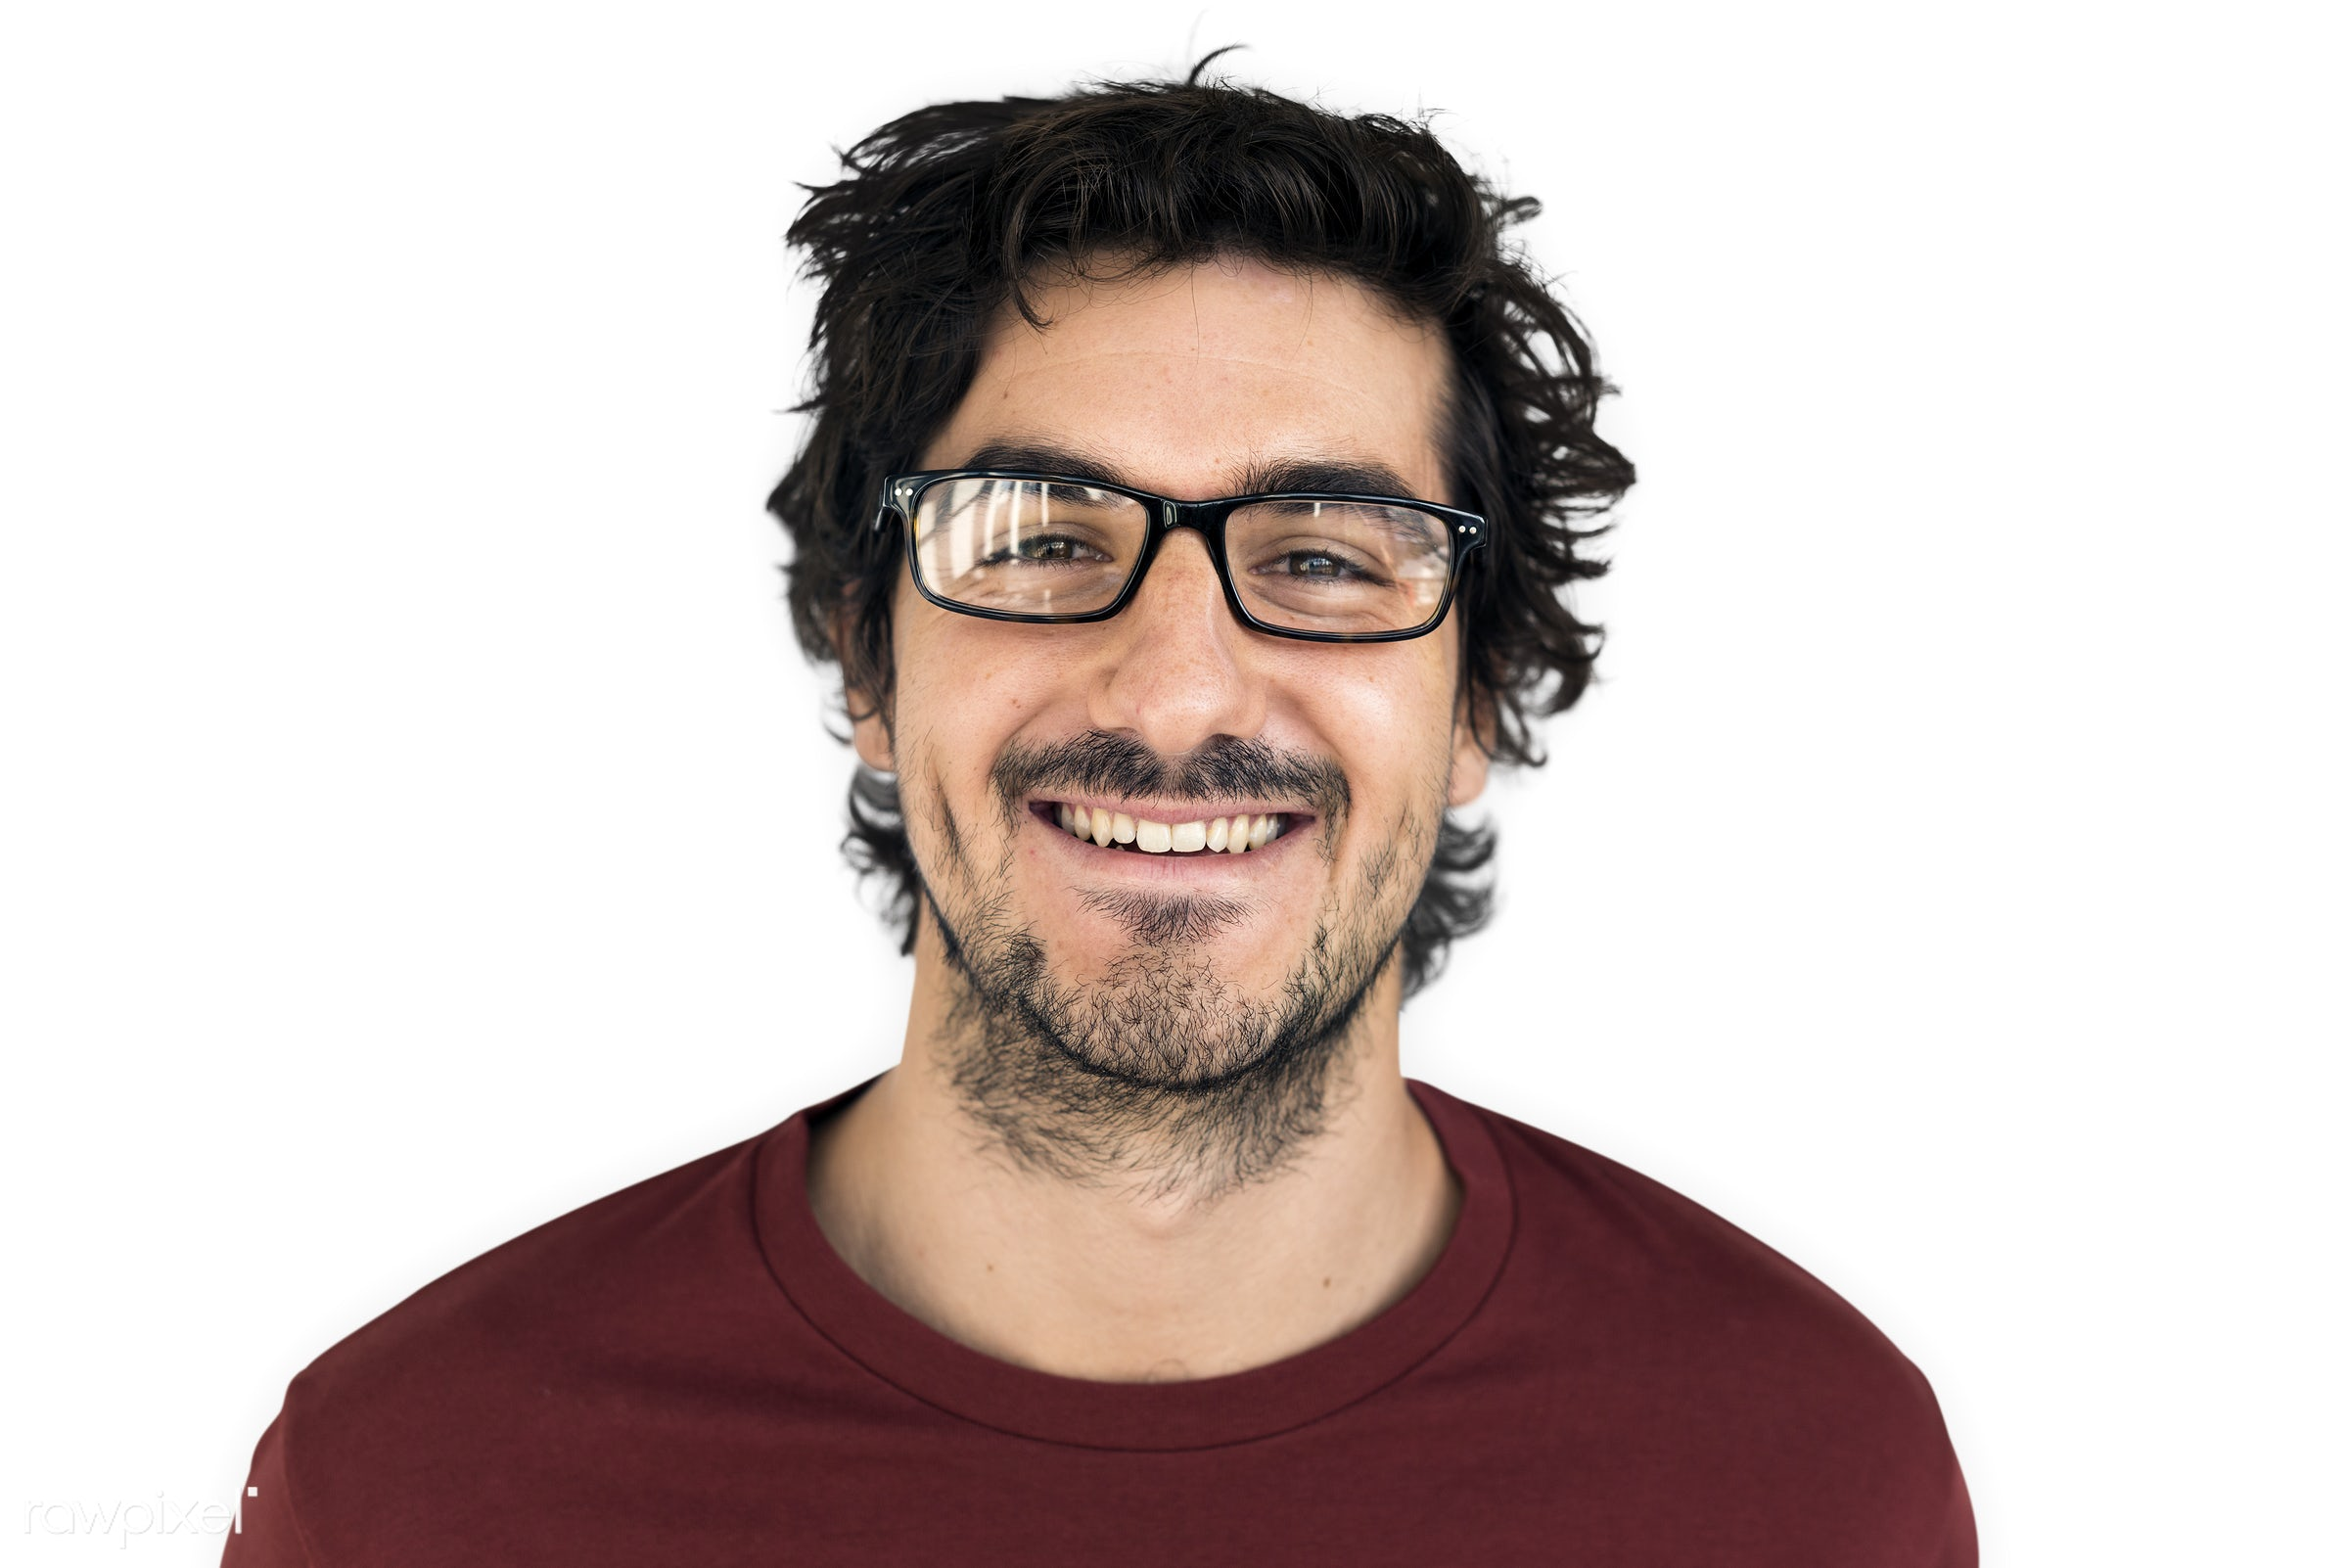 studio, intelligent, expression, person, glasses, people, caucasian, looking, style, happy, casual, man, smiling, isolated,...